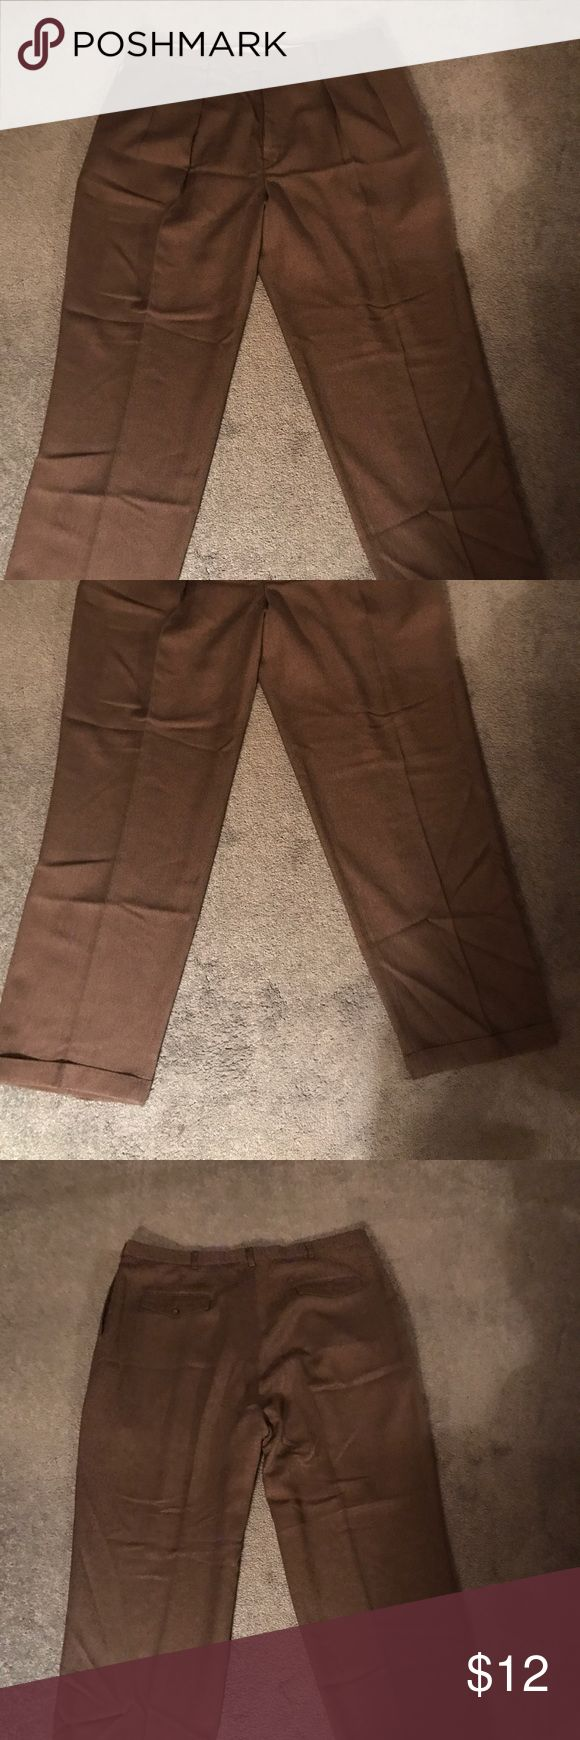 Men's Brown Slate Cuffed Pants Slates Cuffed Brown Mens Pants size 40x32, they are in excellent condition. Please feel free to ask any questions. Slates Pants Dress